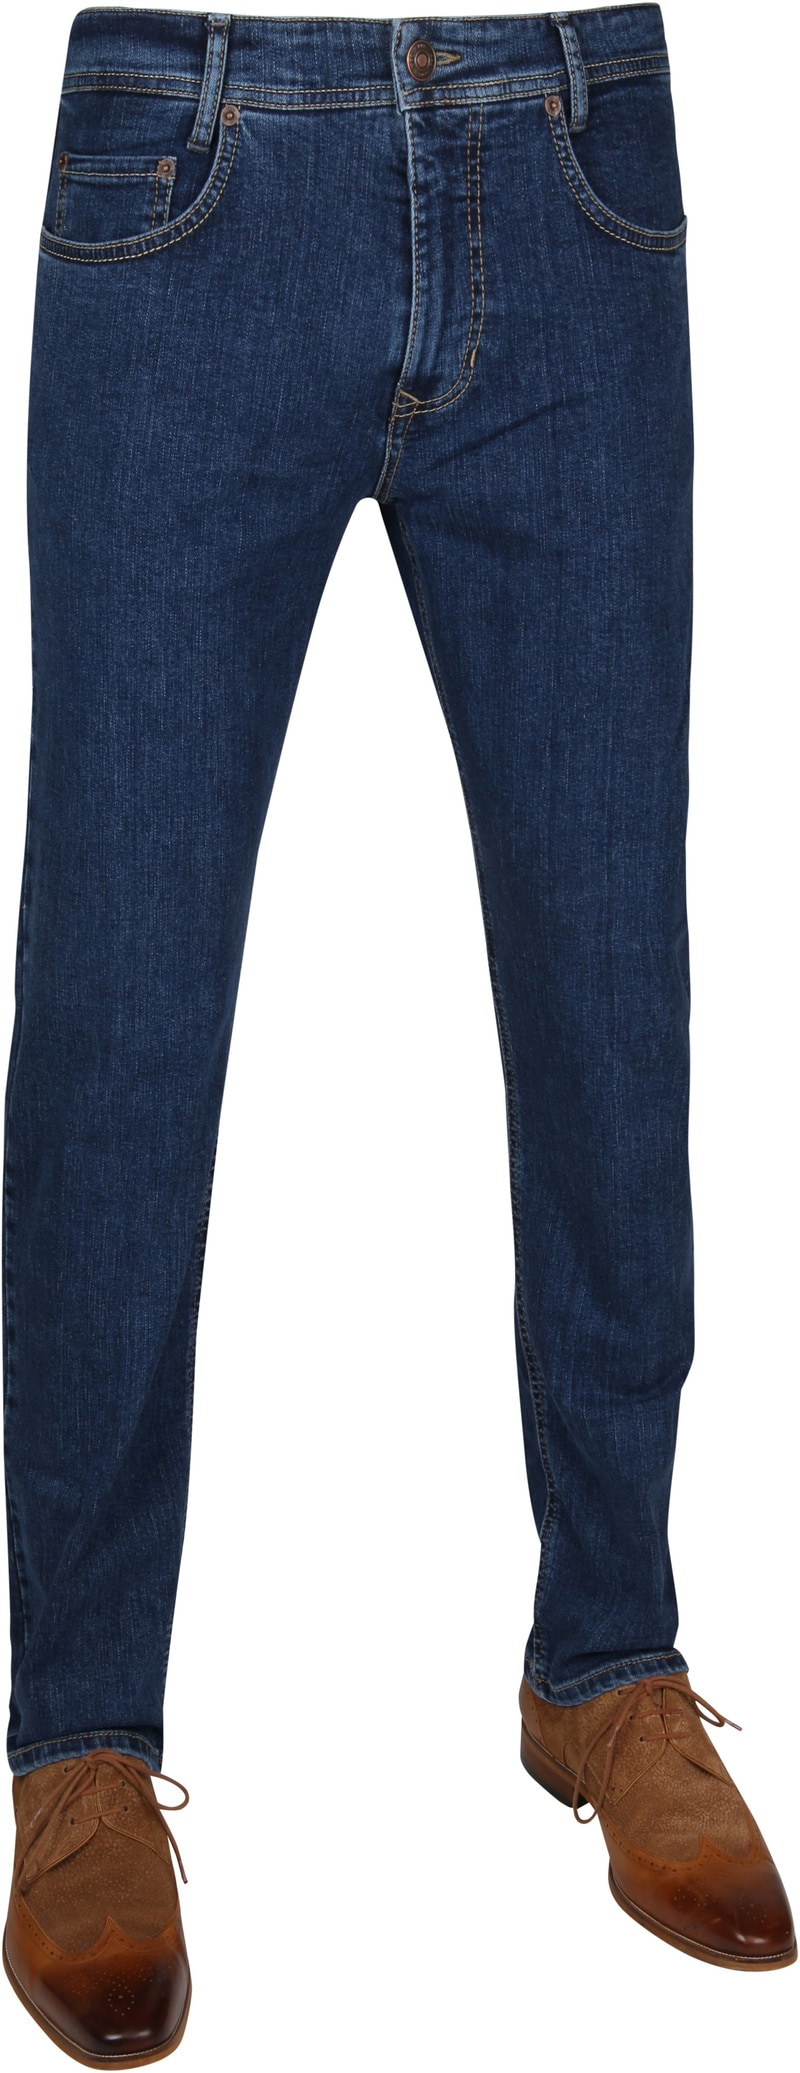 Mac Arne Jeans Light Used Blue photo 0